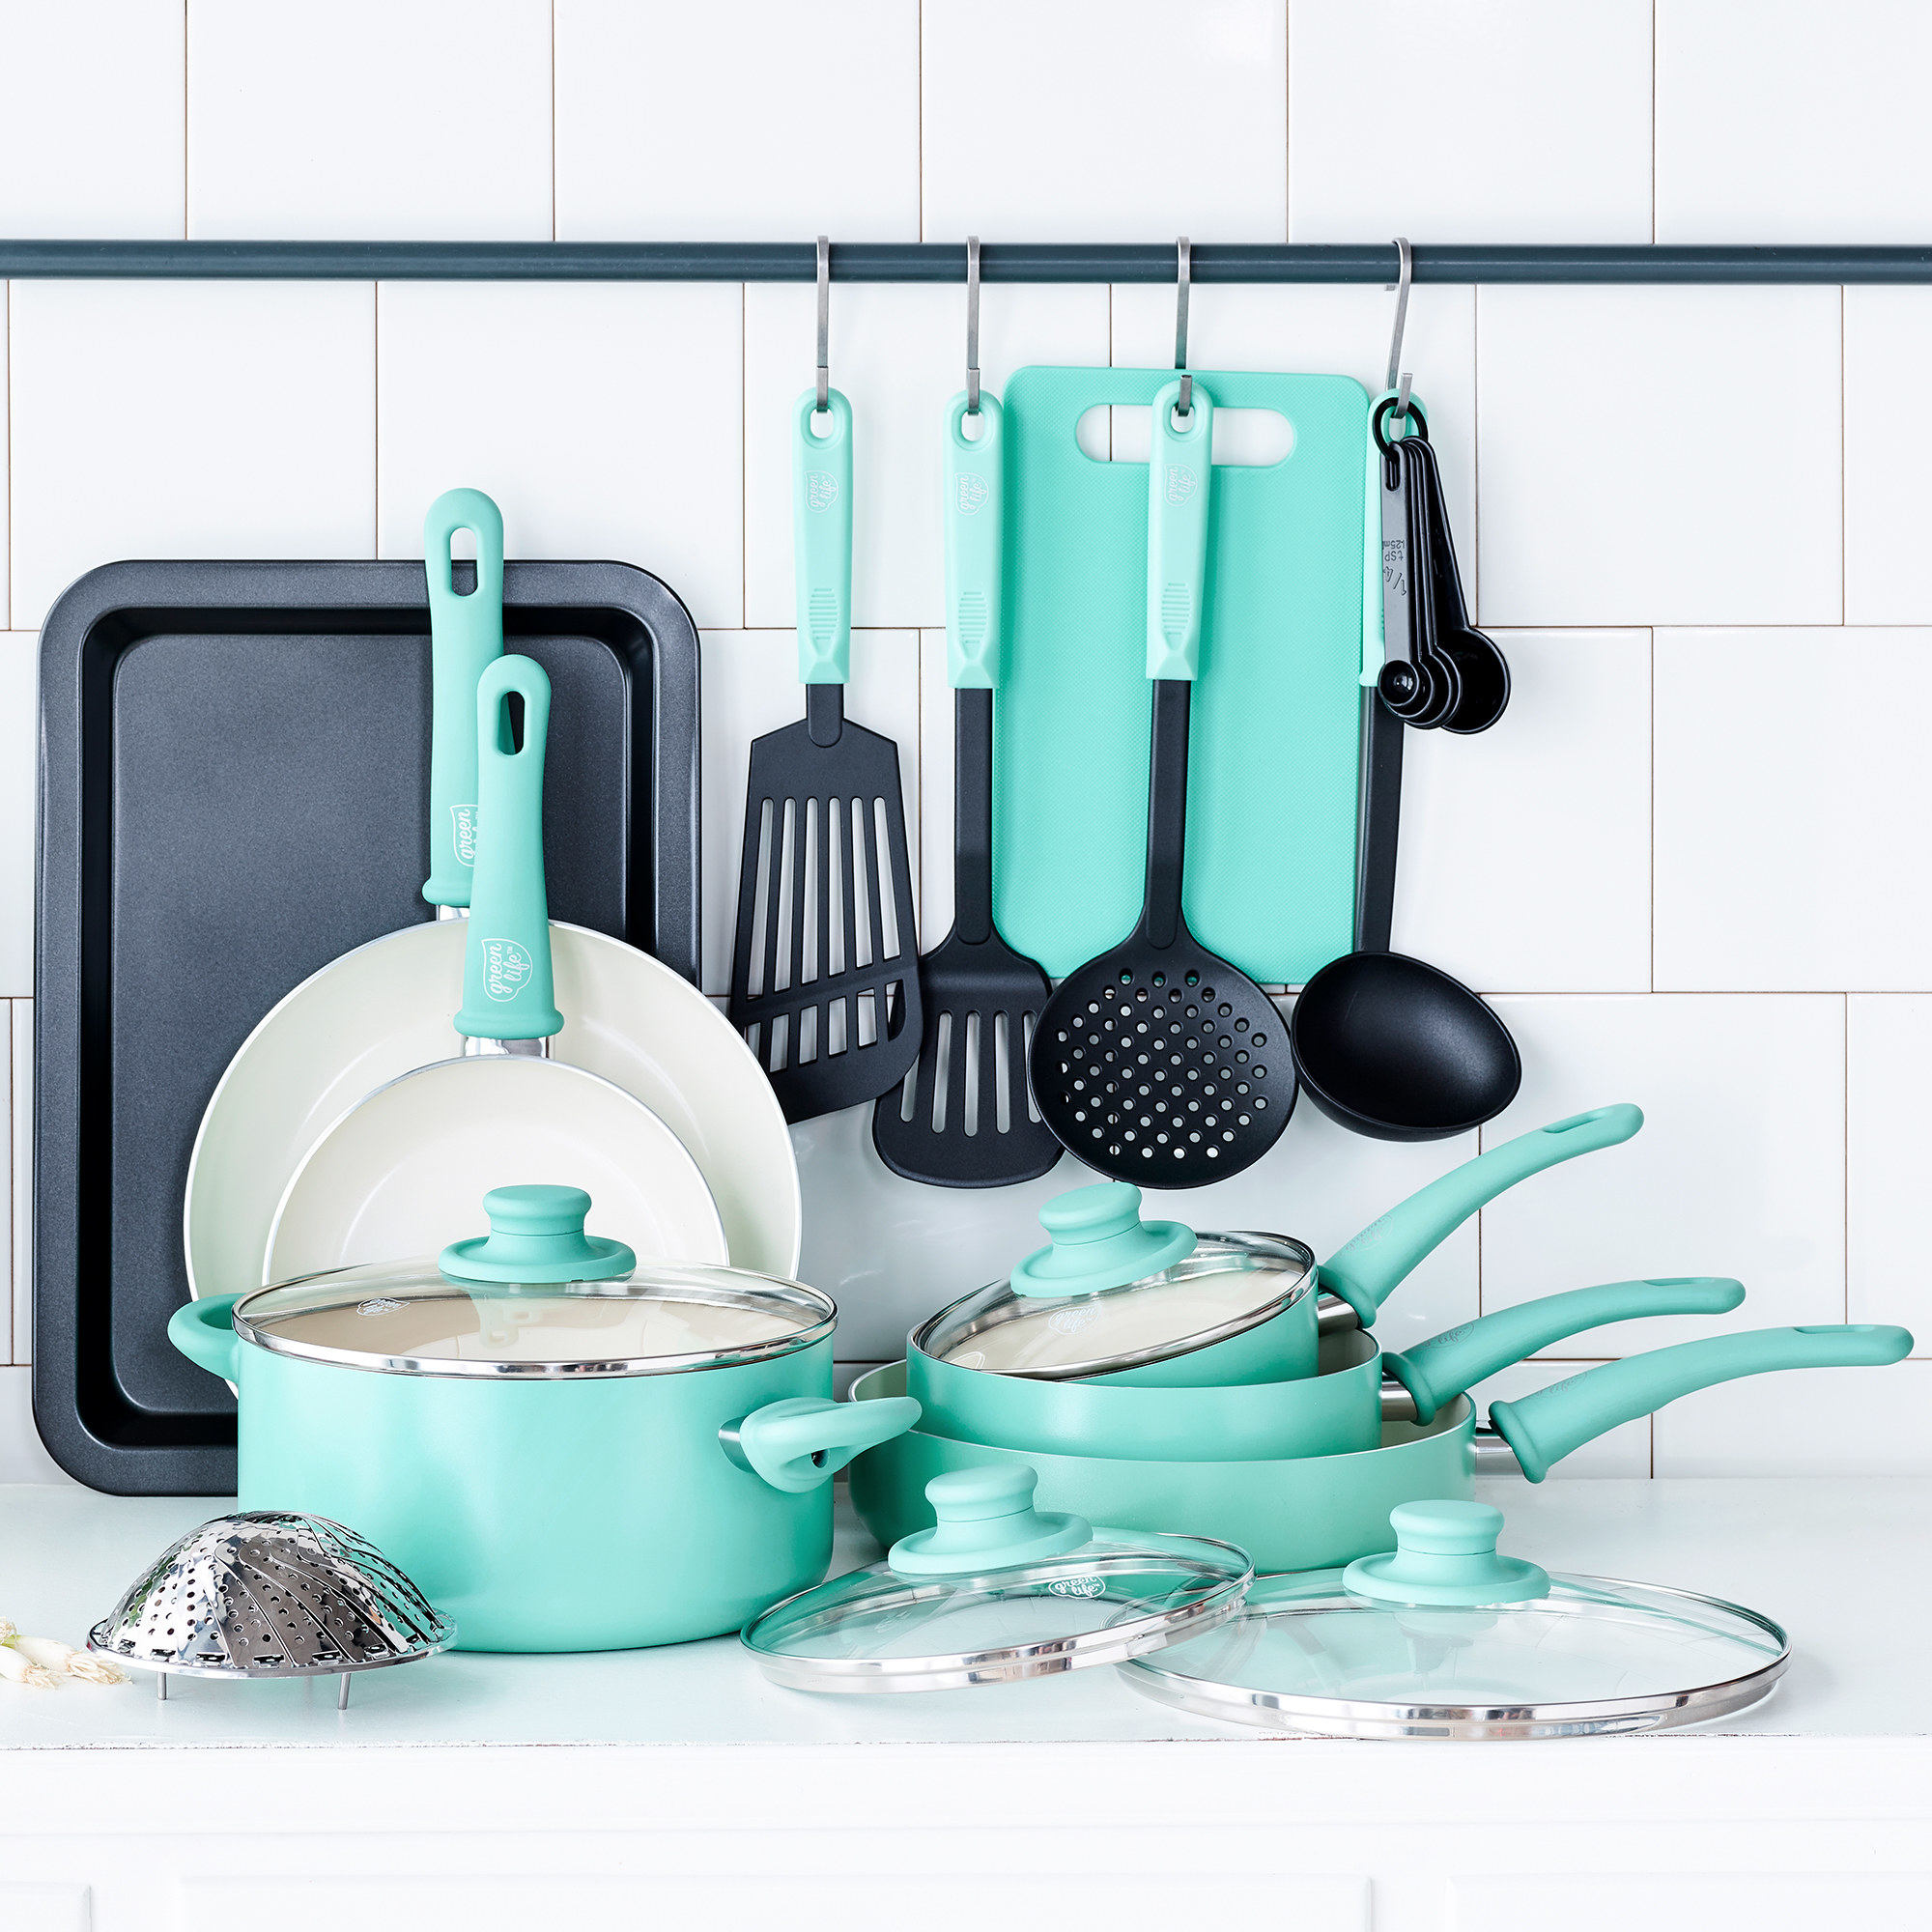 a light blue set of pots, pans, and utensils